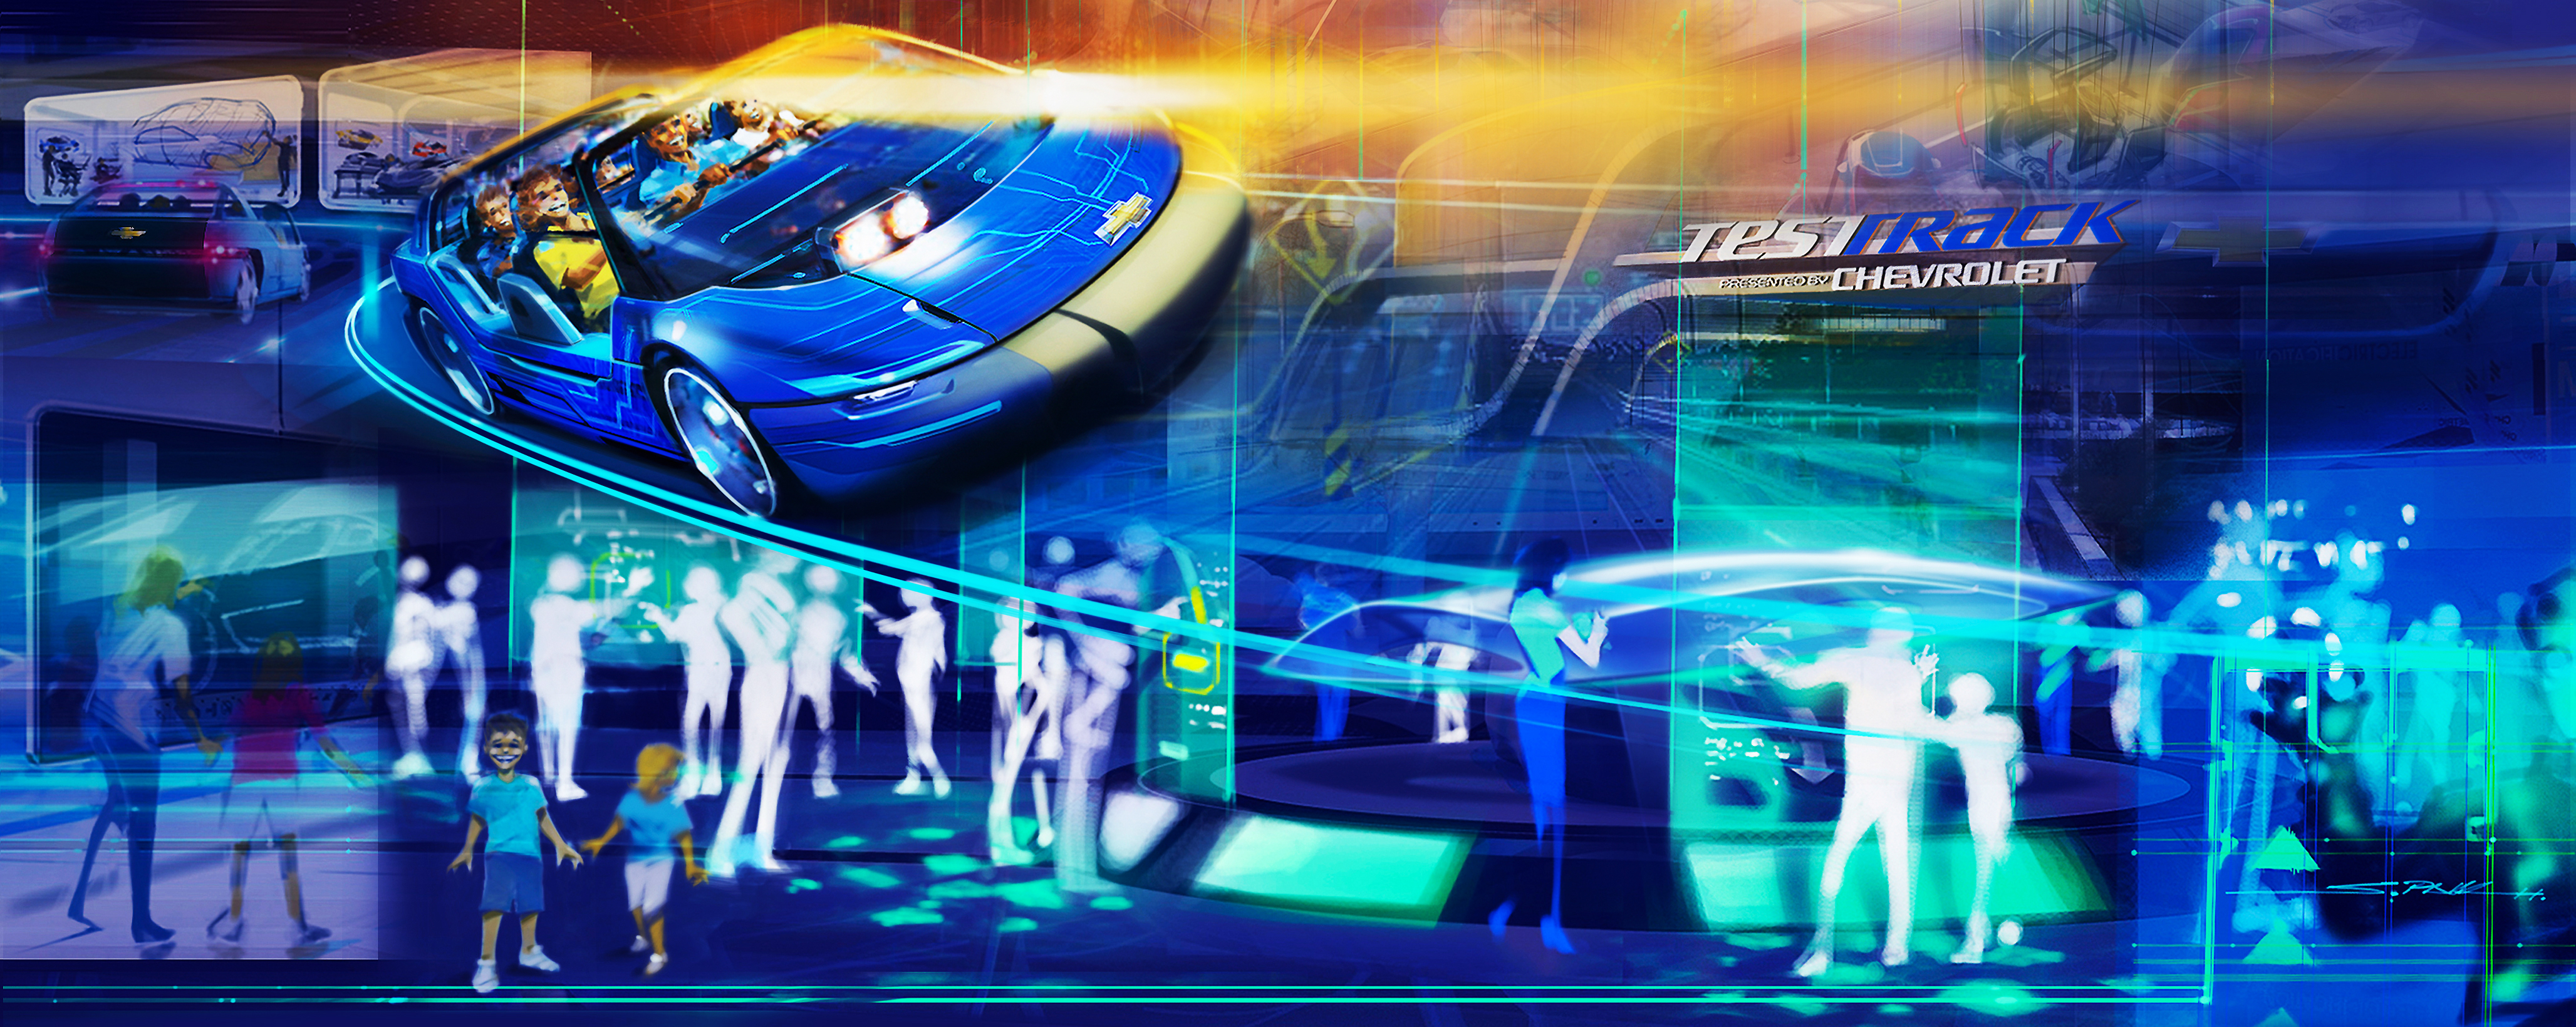 Driving Test h Track Test Track Presented by